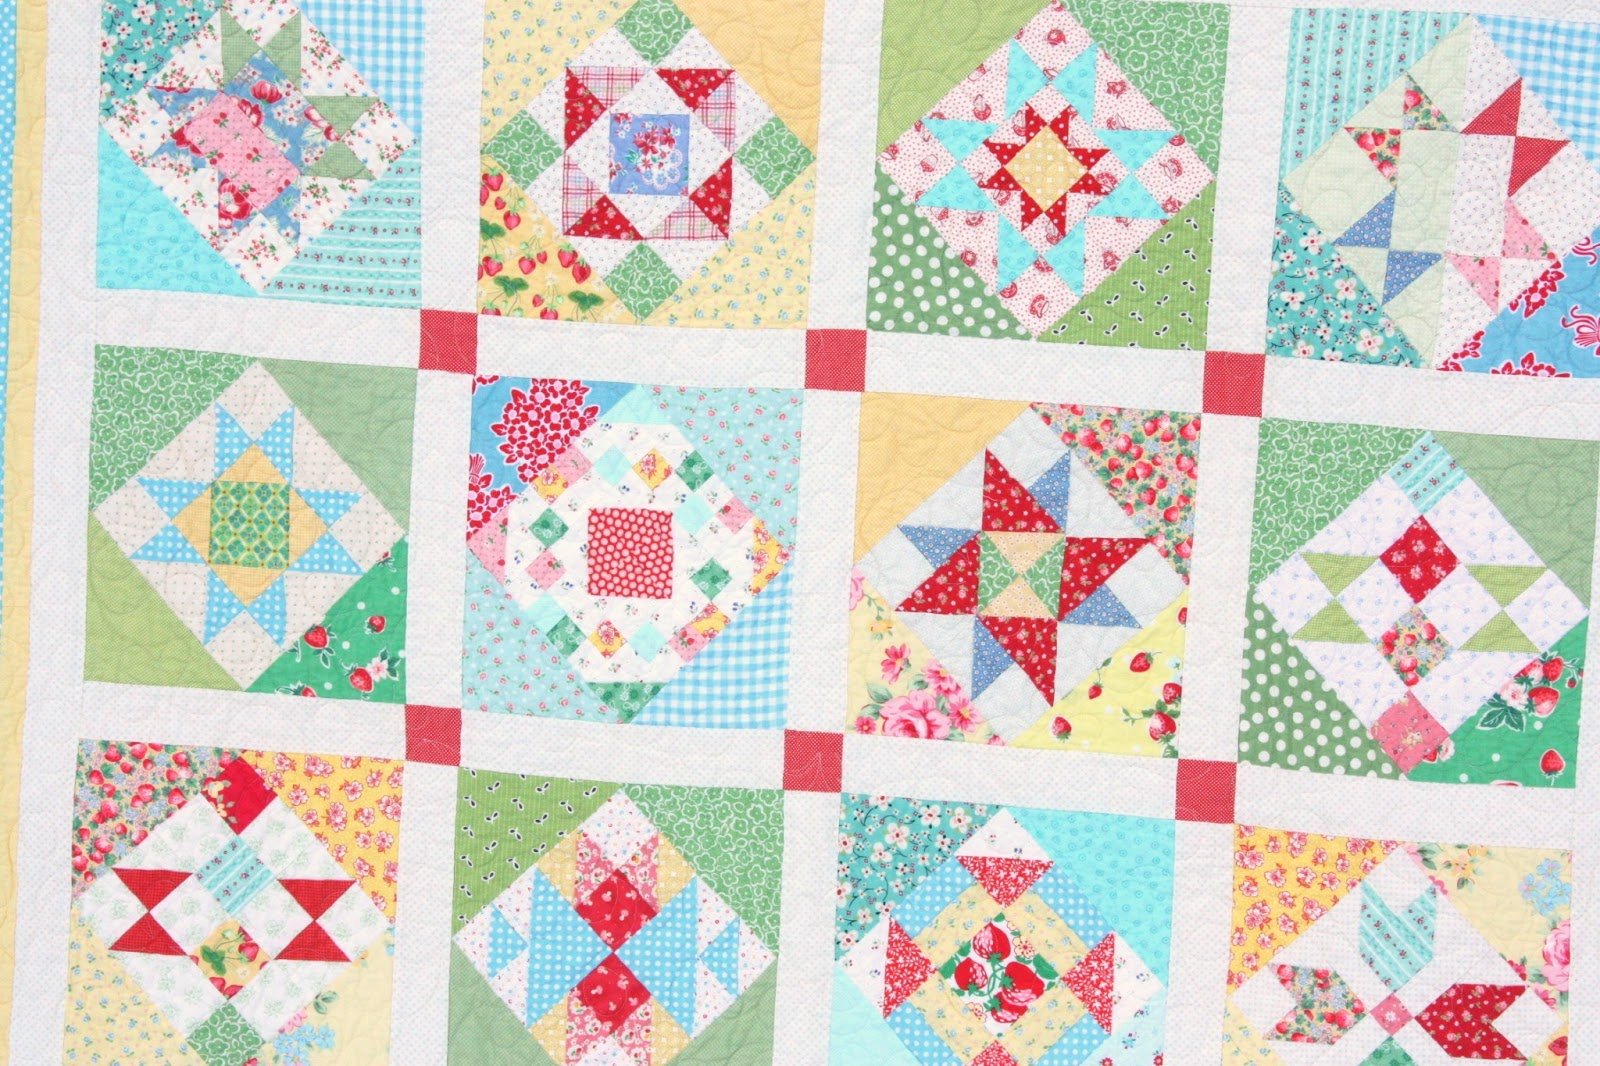 Quilt Patterns Block Of The Month : Finished Block of the Month Quilt! - Diary of a Quilter - a quilt blog